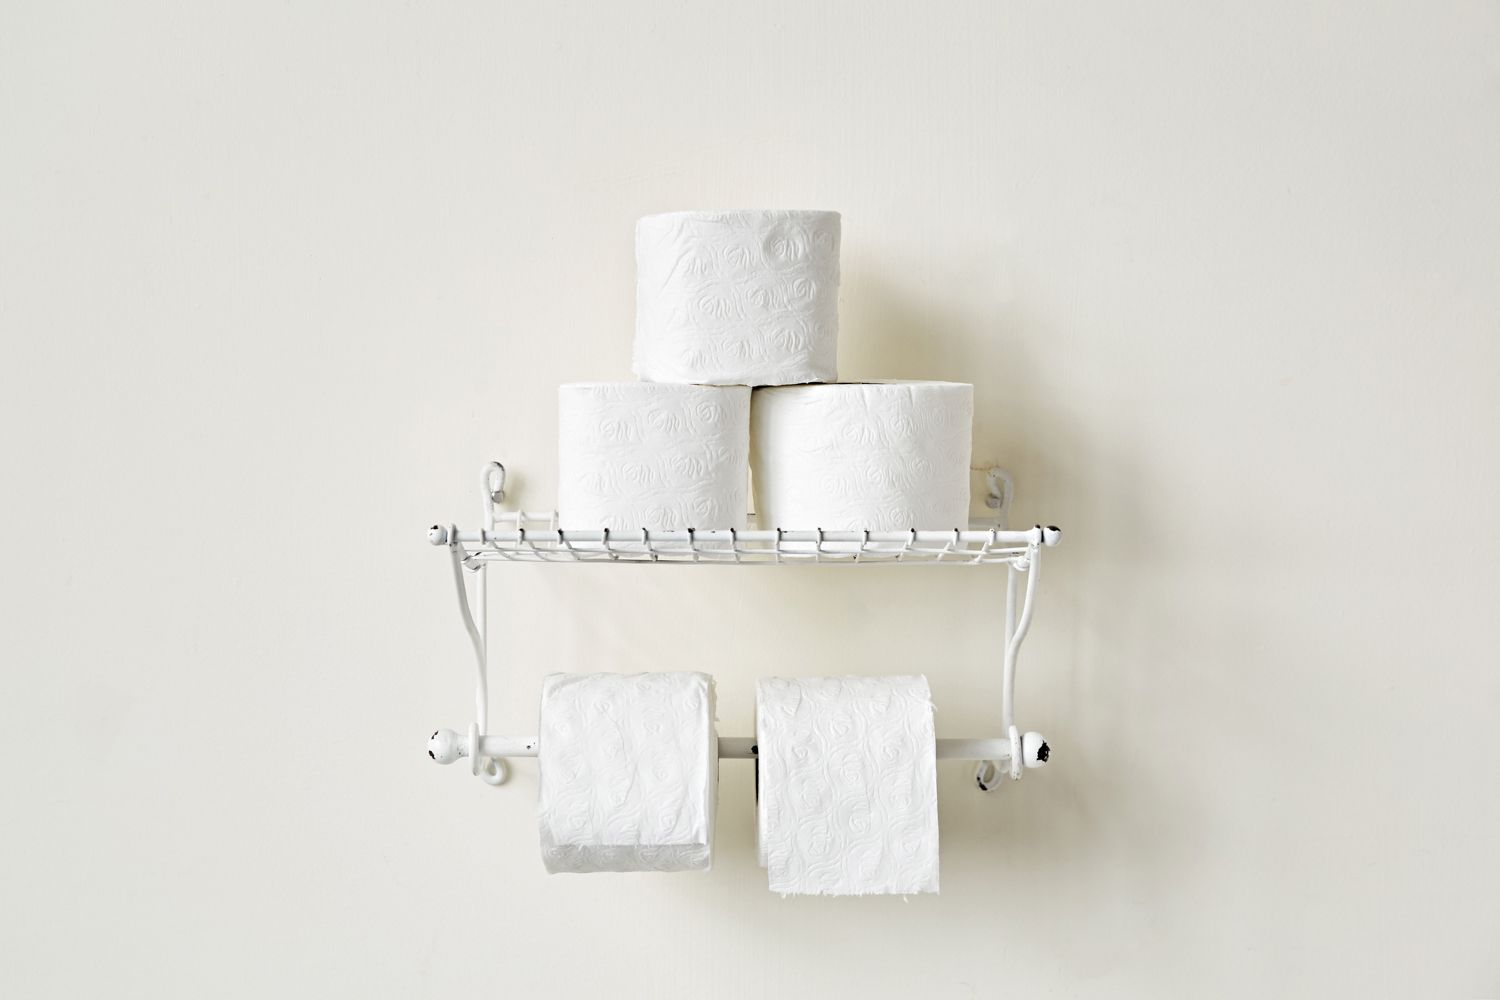 Metal Paper Toweltoilet Paper Holder With Shelf Wall Decor Antique